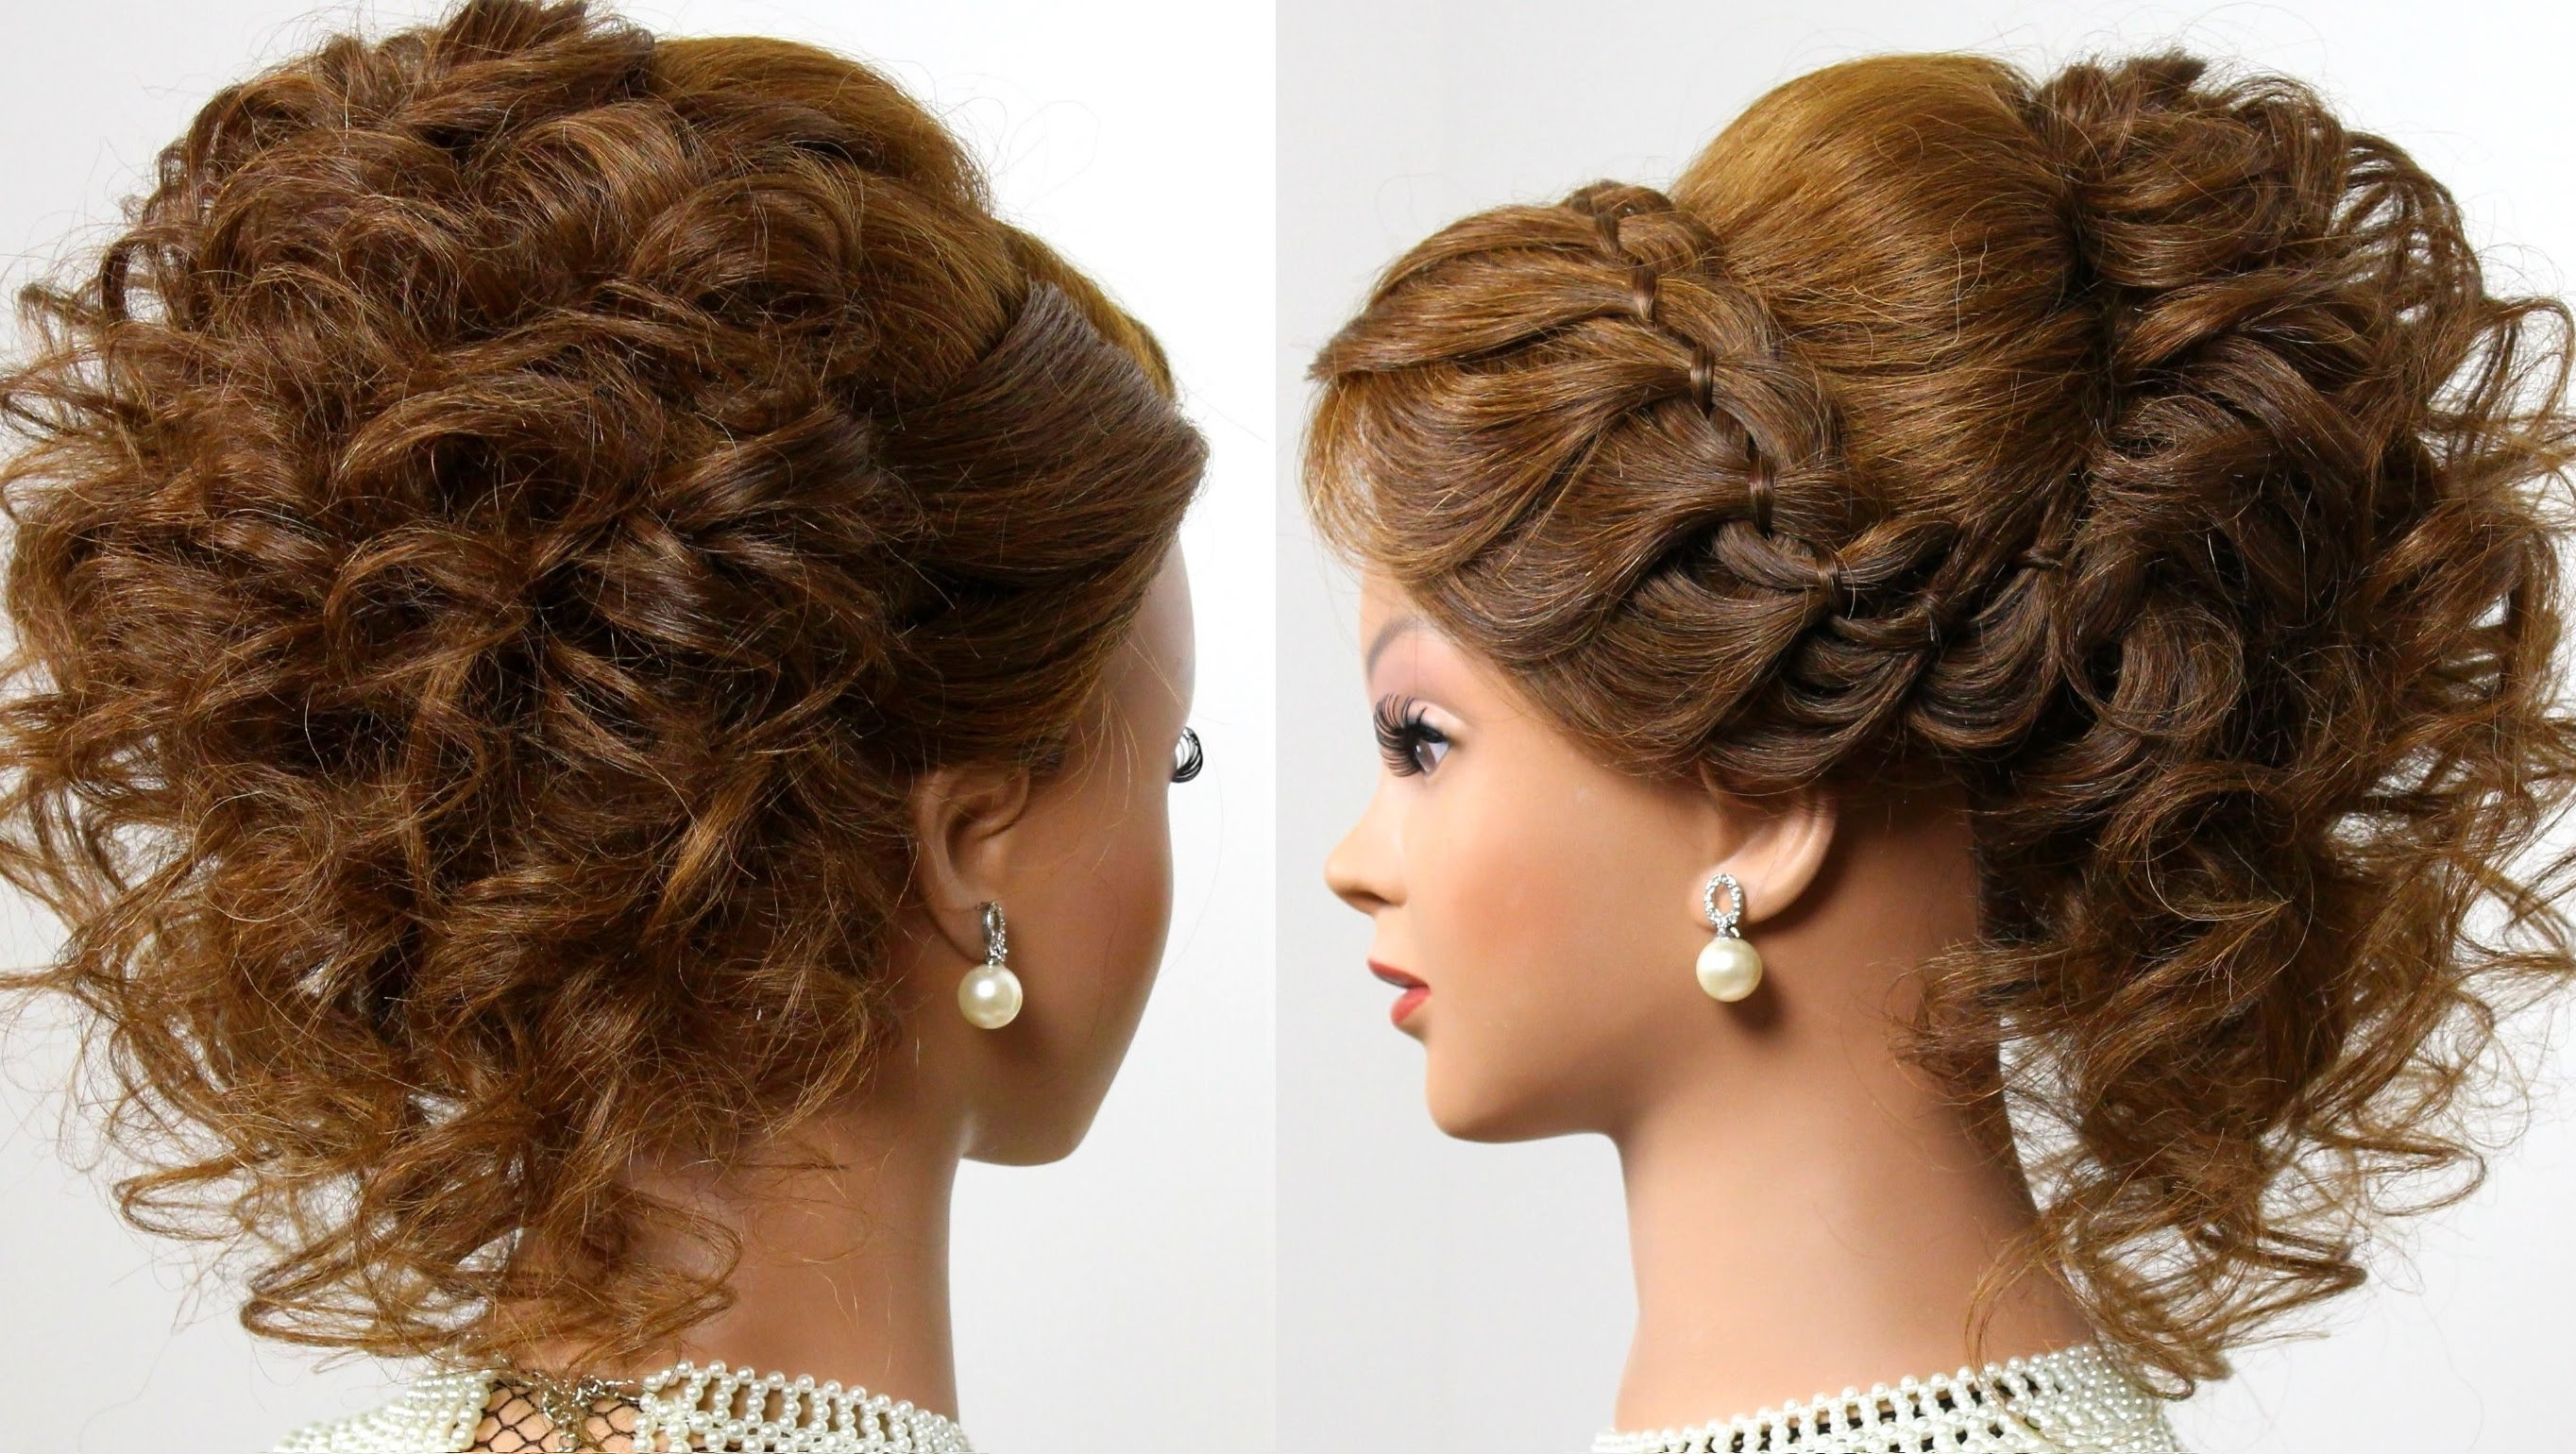 Favorite Prom Wedding Hairstyles For Long Medium Hair Intended For Romantic Hairstyles For Long Hair Prom Wedding Updo (View 6 of 15)